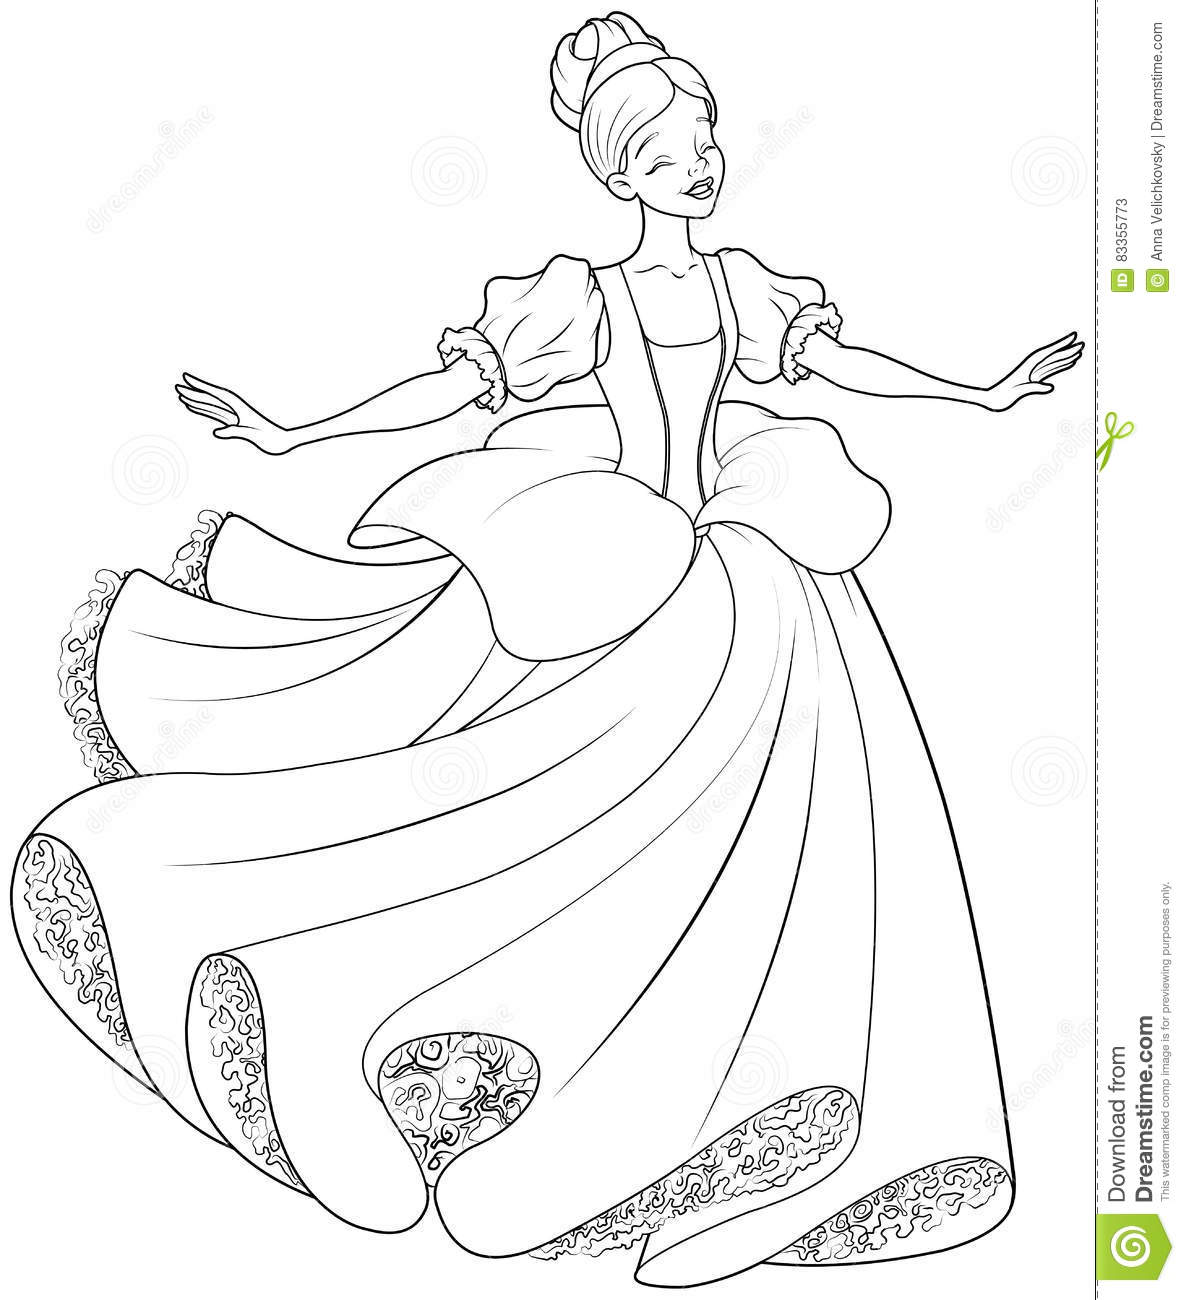 coloring pages ballet slippers alltoys for